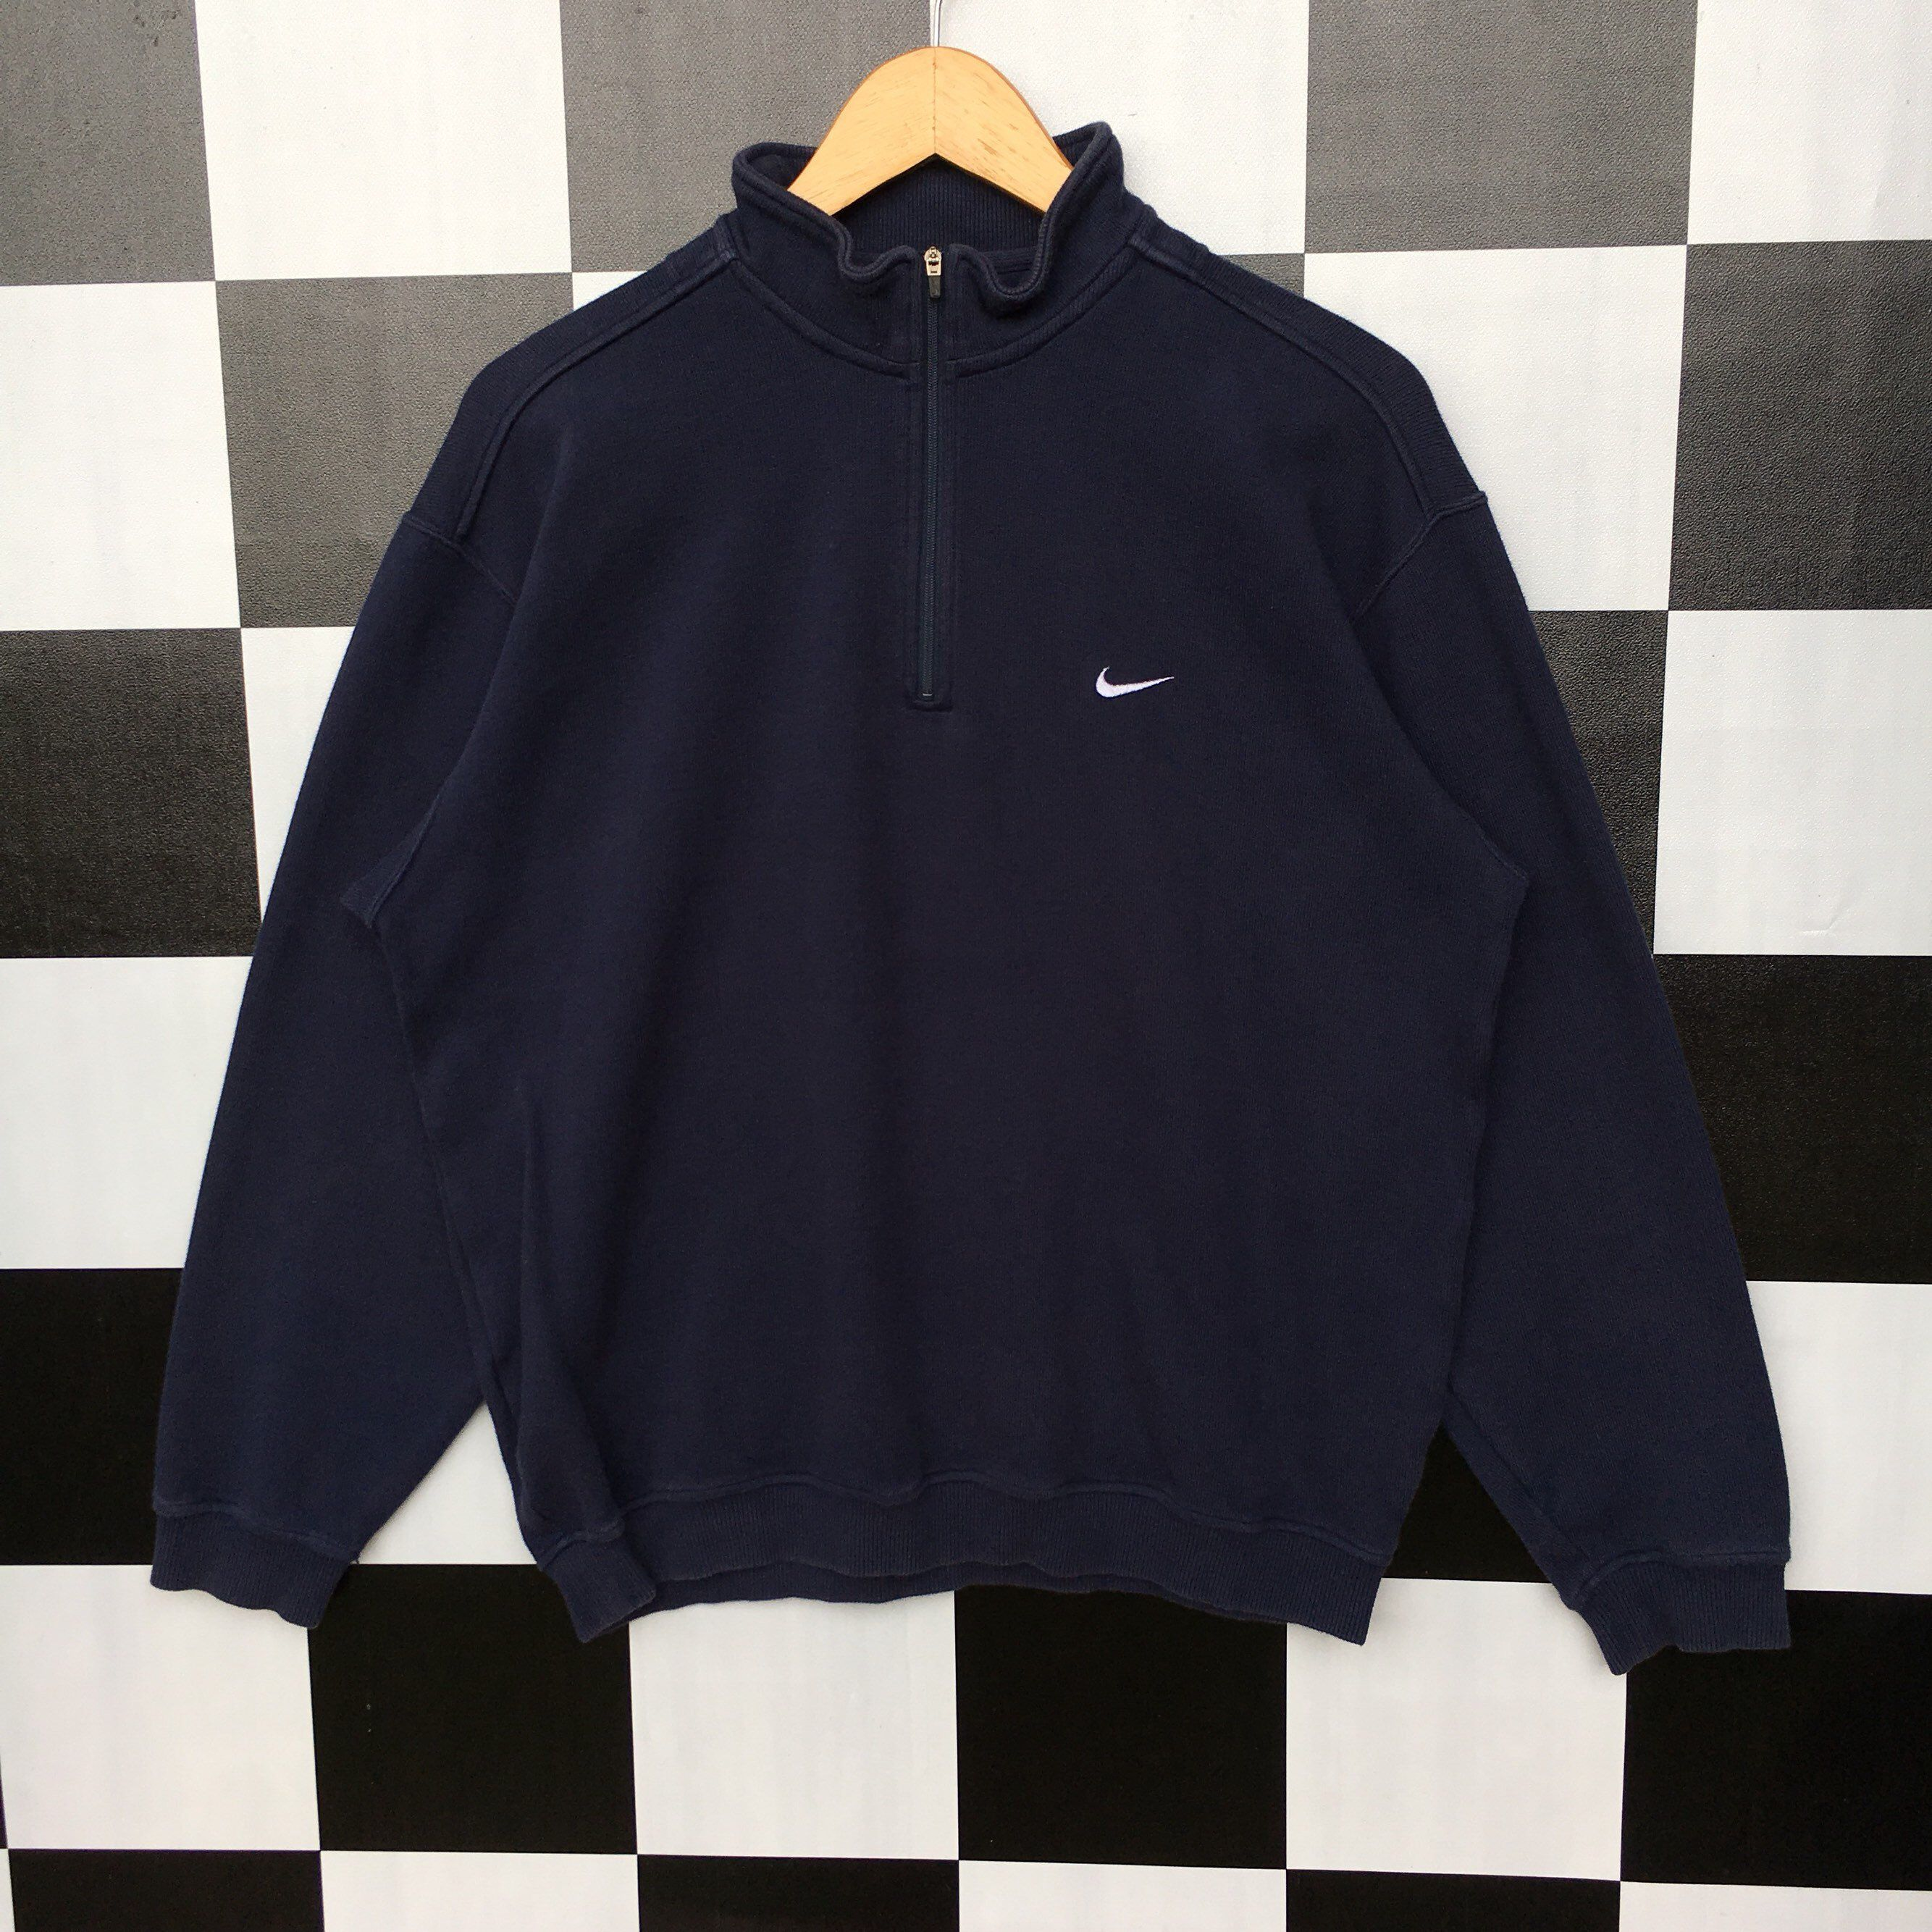 Excited To Share The Latest Addition To My Etsy Shop Vintage Nike Golf Half Zip Small Logo Sweatshi Vintage Nike Windbreaker Vintage Nike Half Zip Sweatshirt